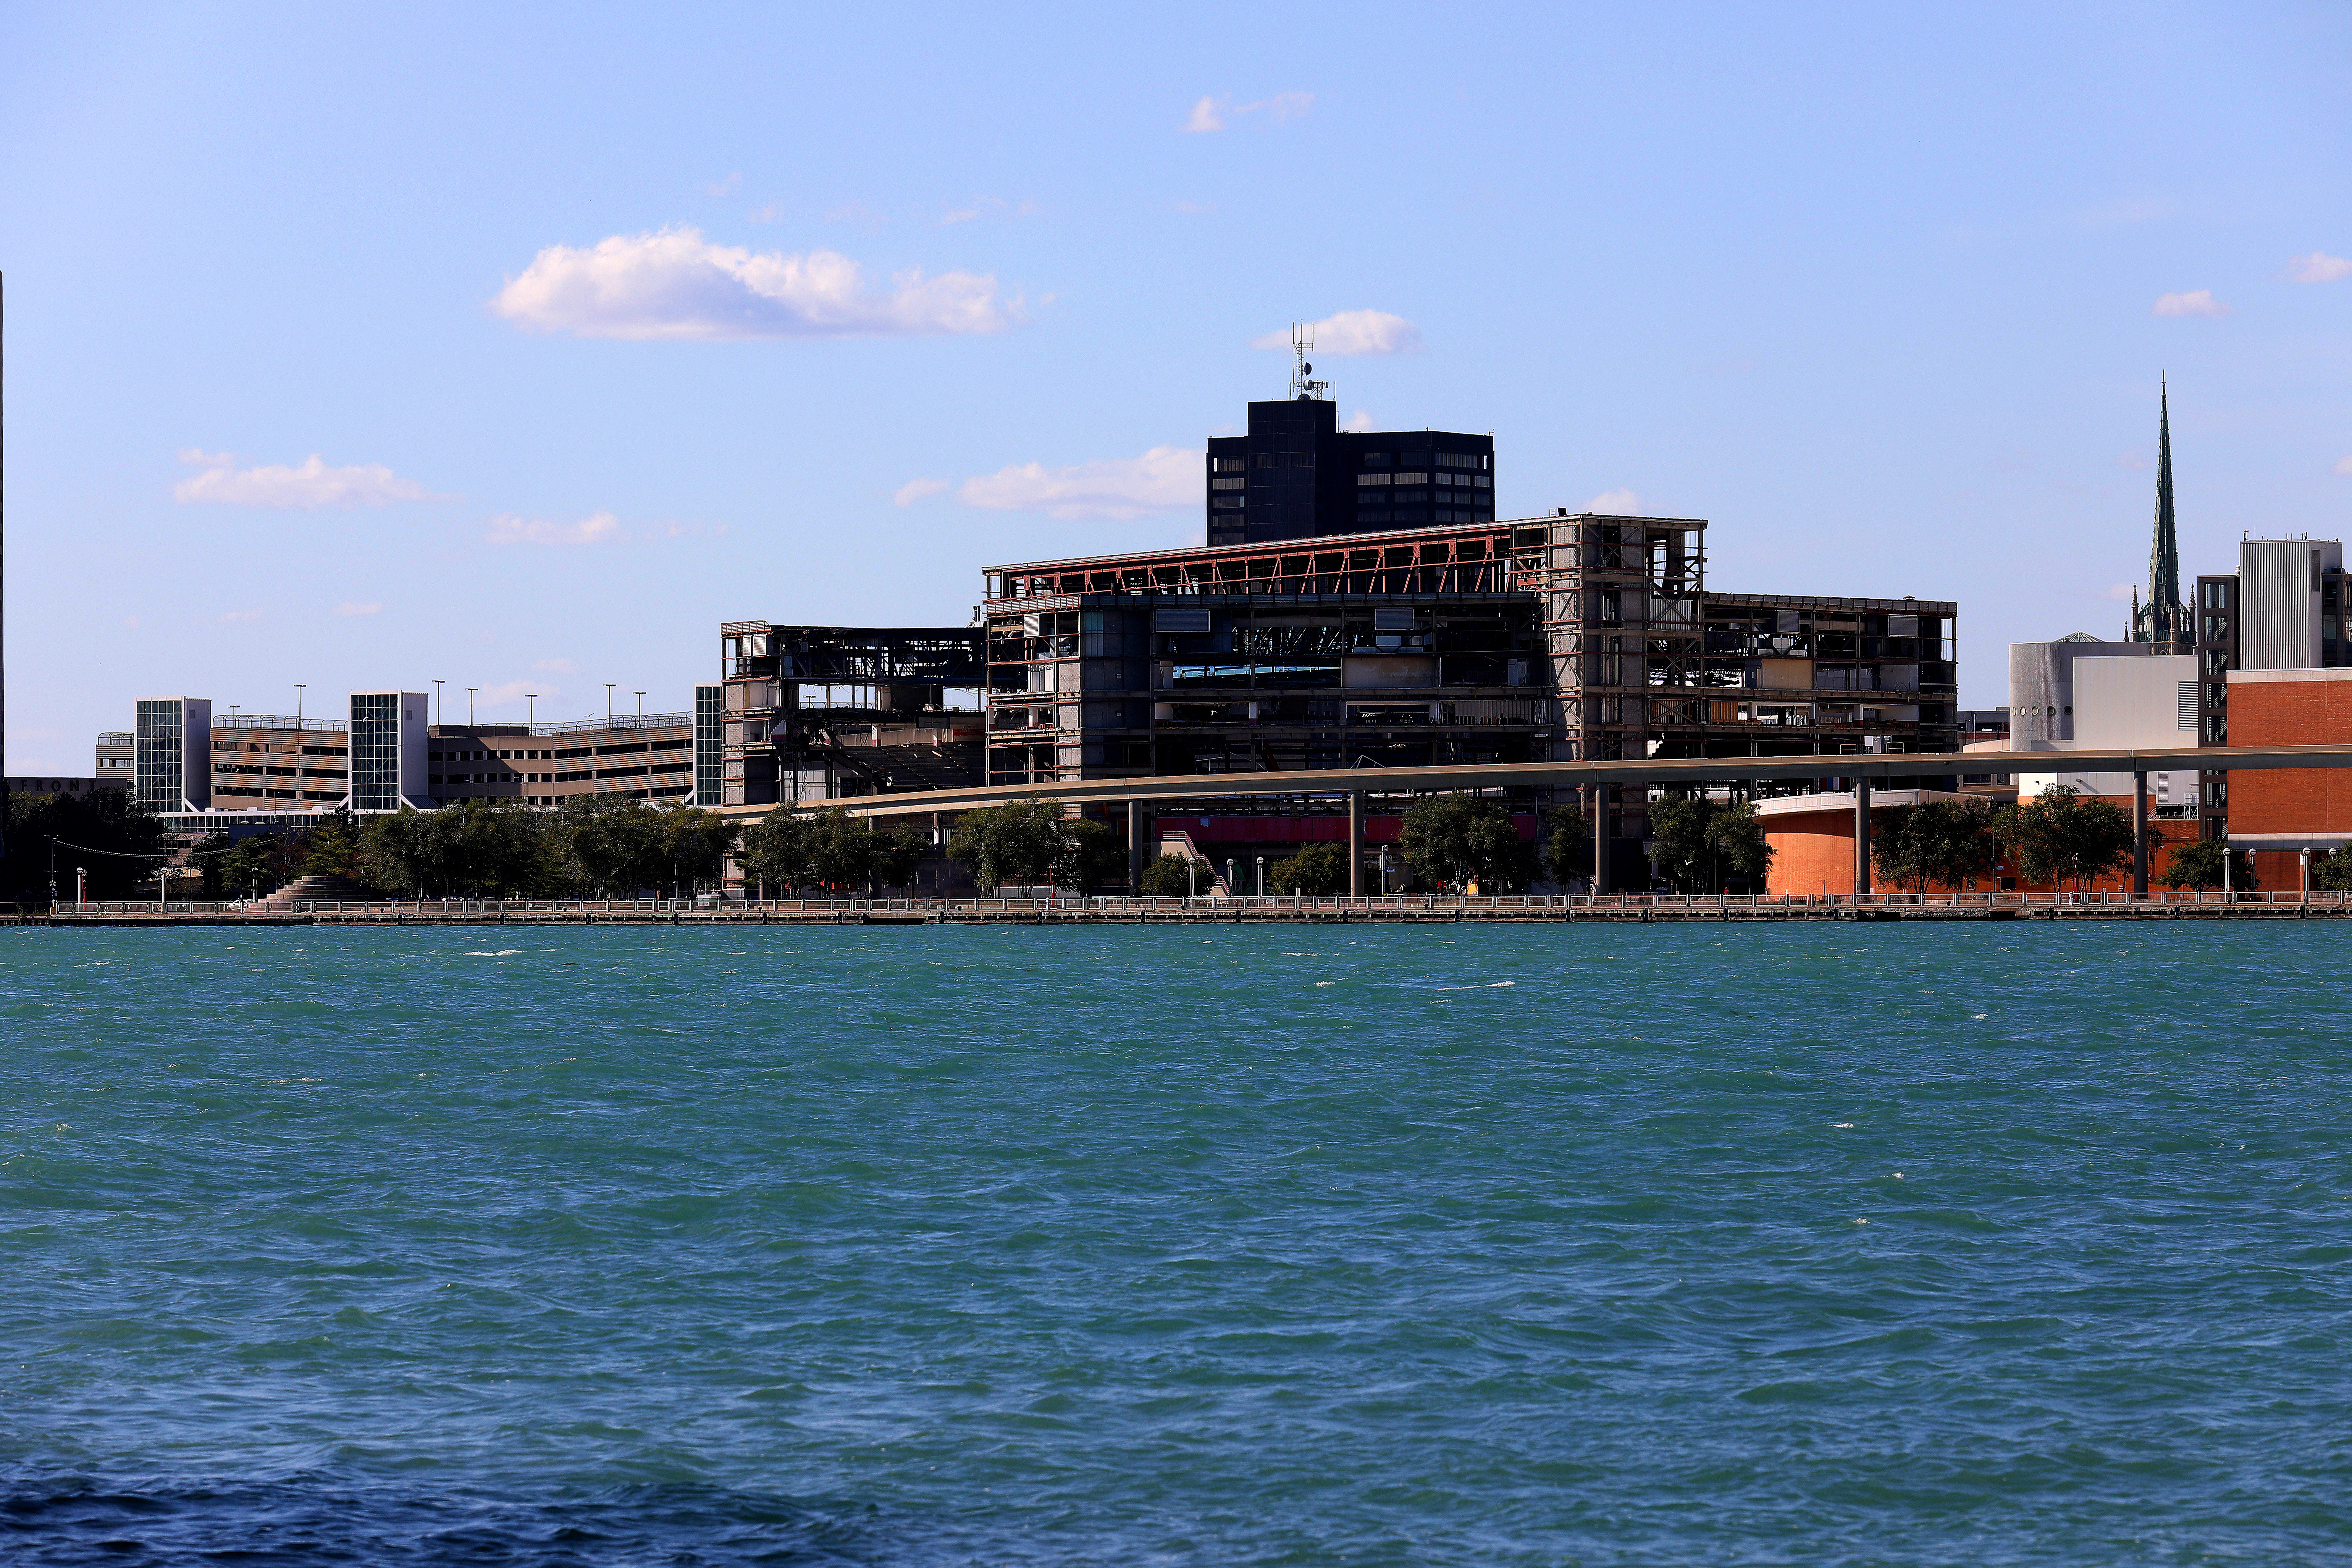 View across the Detroit River of a partially deconstructed buildings. All that's left is the steel support structure.